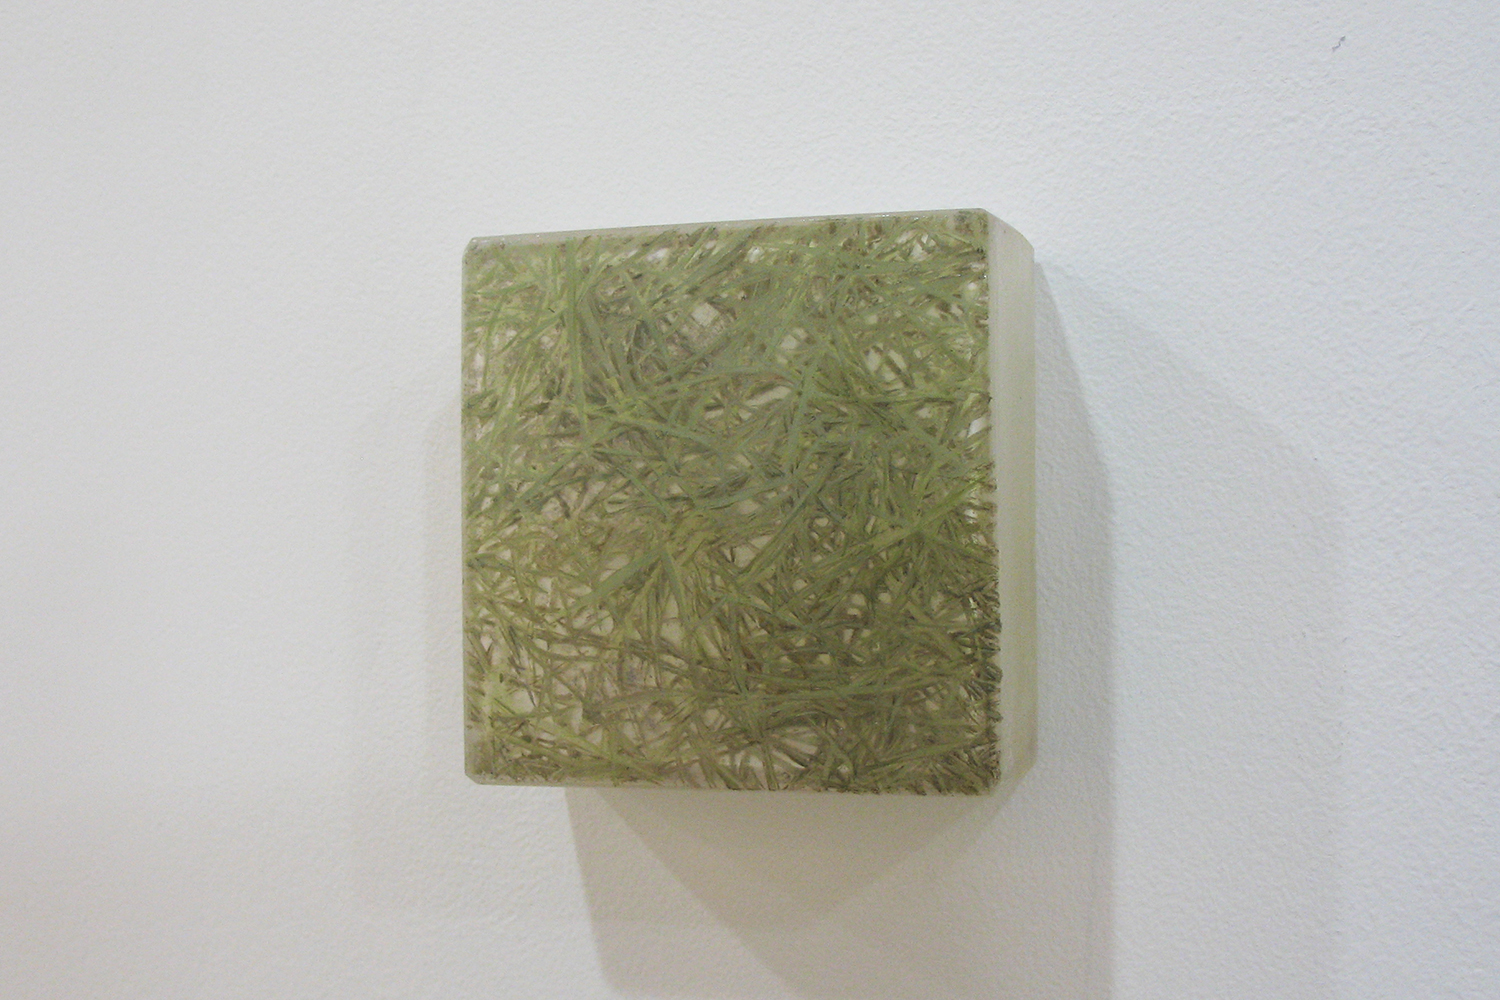 Photo-painting 草上のかおり-7|Scent on the grass-7 |7.5 x 7.5 x 3 cm|Oil on FRP, mixed media| 2009